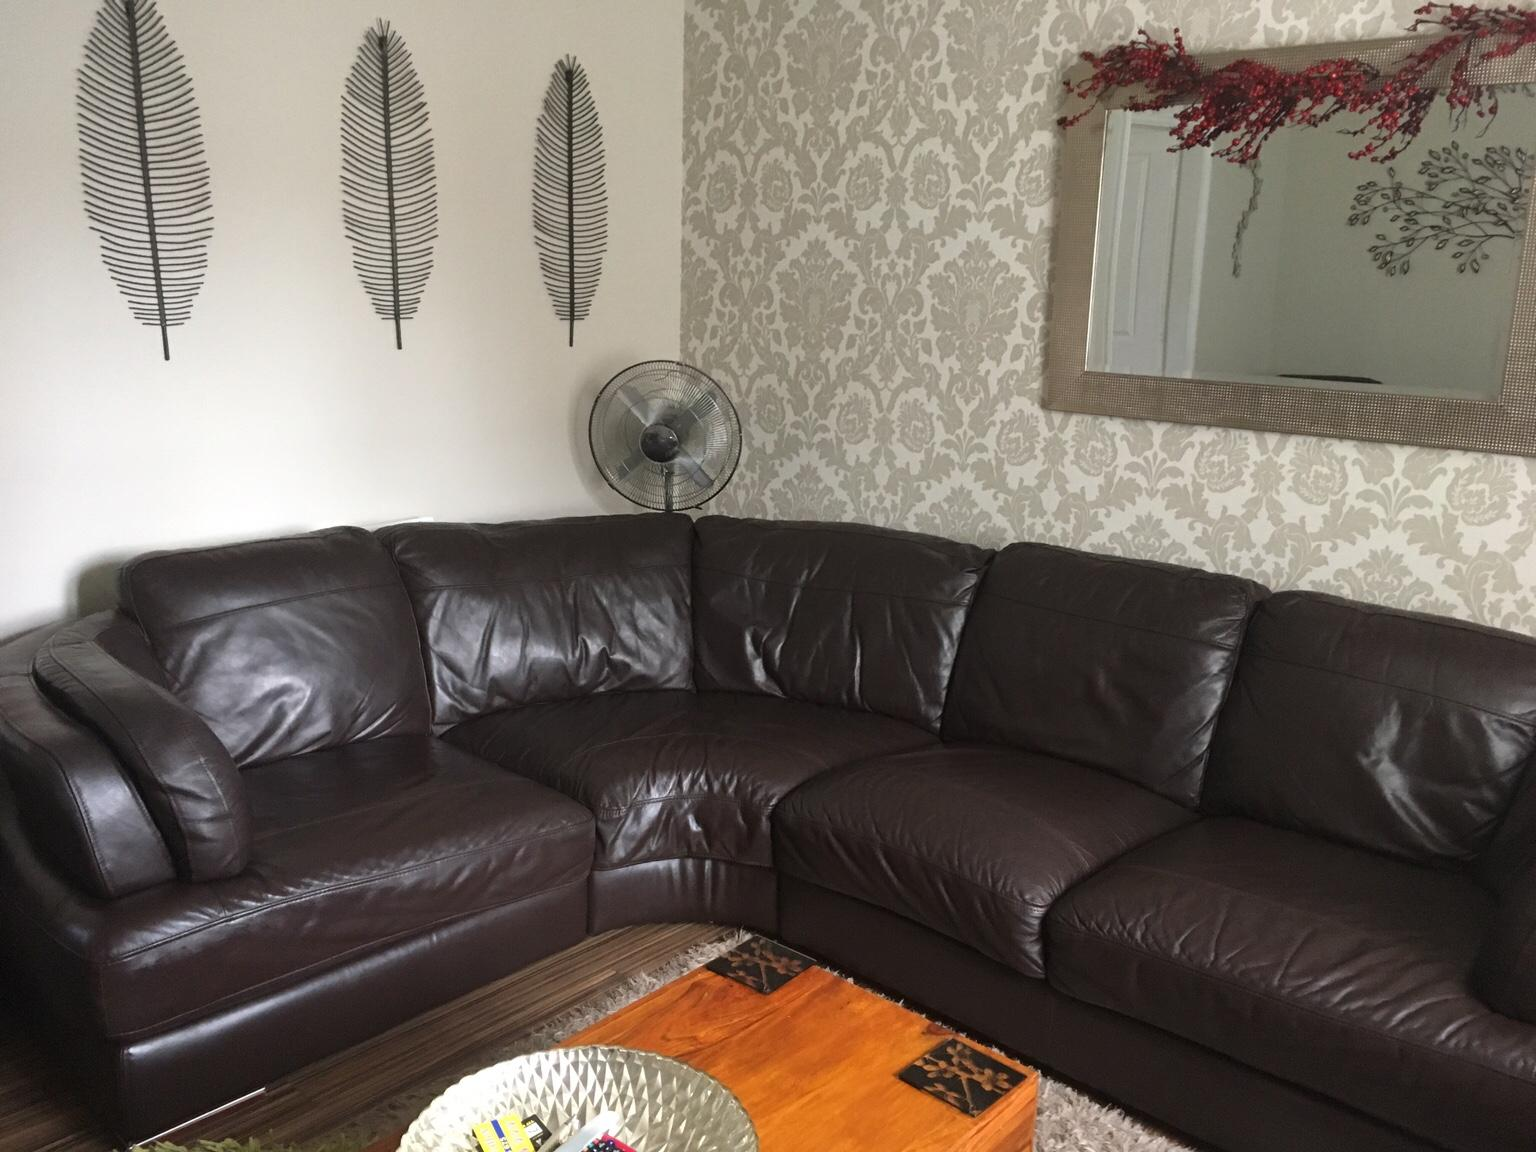 Corner Sofa And Cuddle Chair For Sale In Ts5 Middlesbrough For 495 00 For Sale Shpock